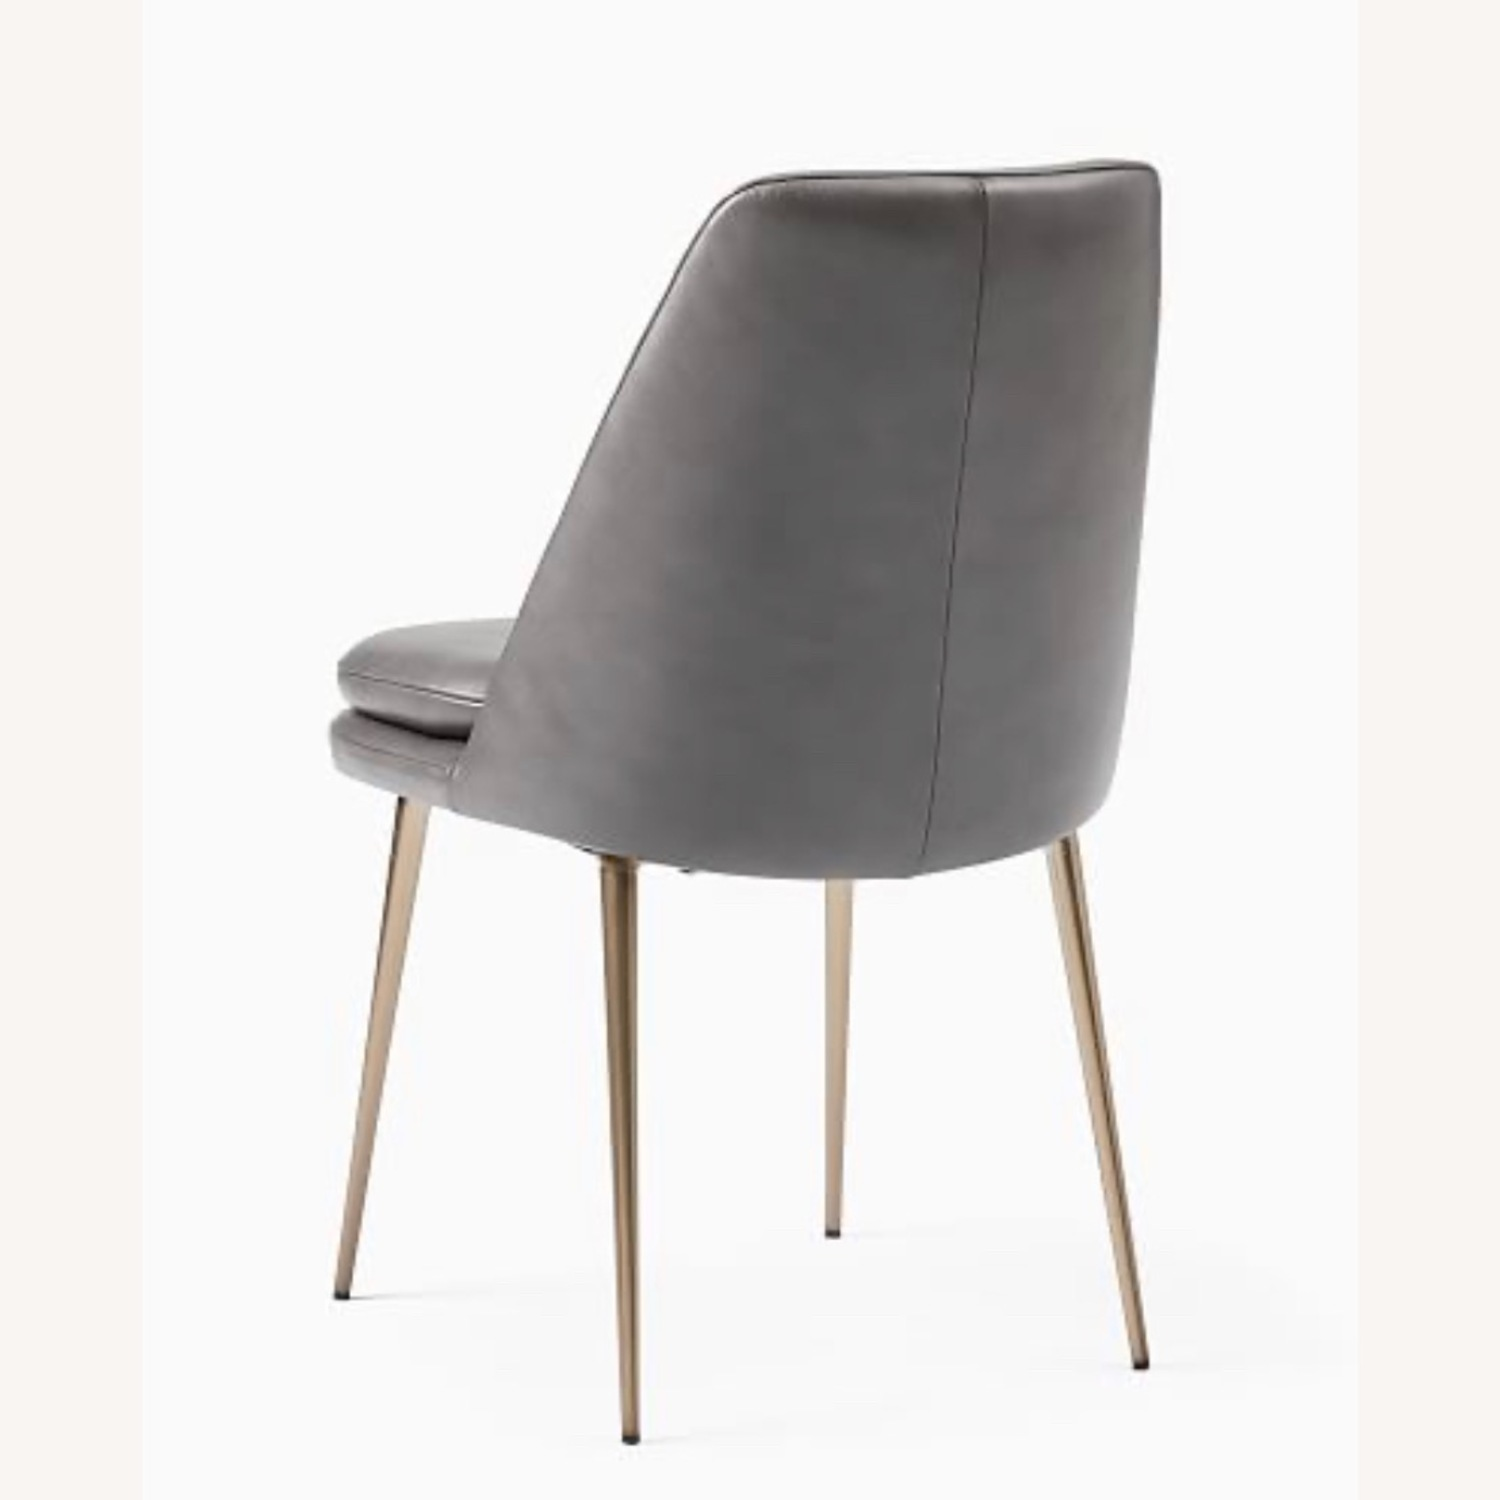 West Elm Finley Leather Dining Chair Gray - image-2